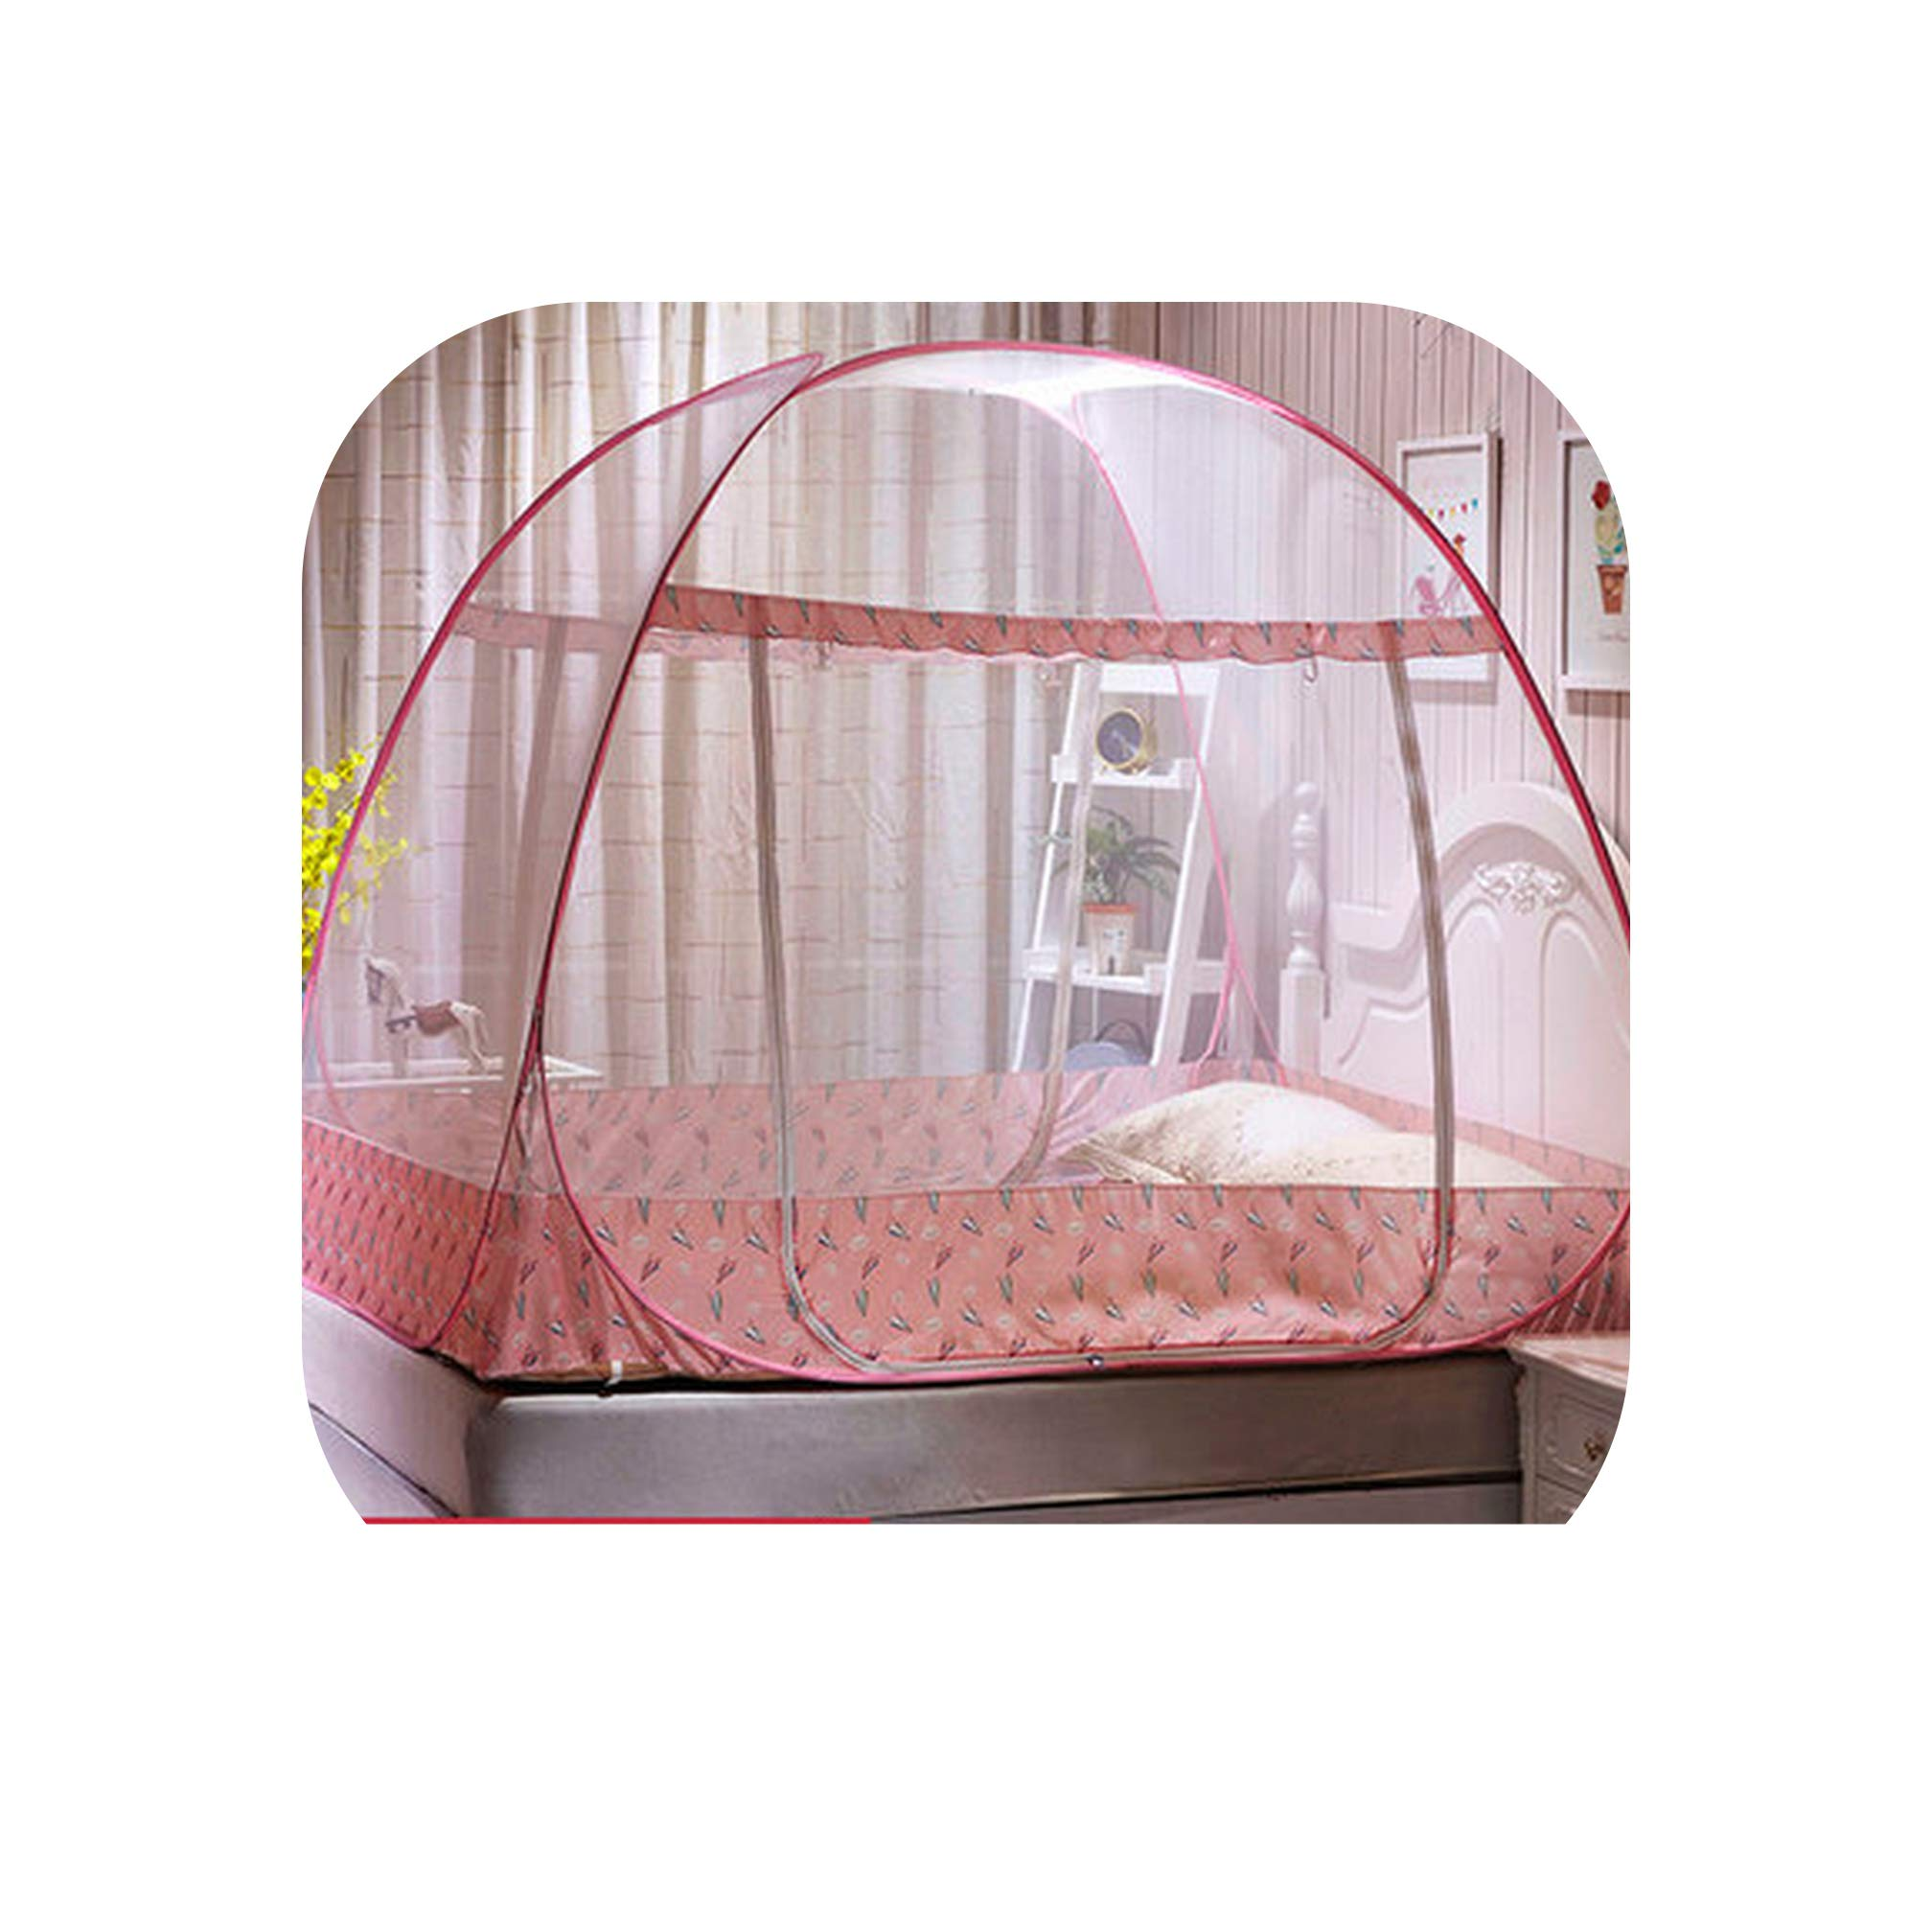 Portable Folding Mosquito Net Blue Double Bed Canopy Netting Insect Nets Adults Camp Bed Tent Kids Canopy Net,Pink,1.8m (6 feet) Bed